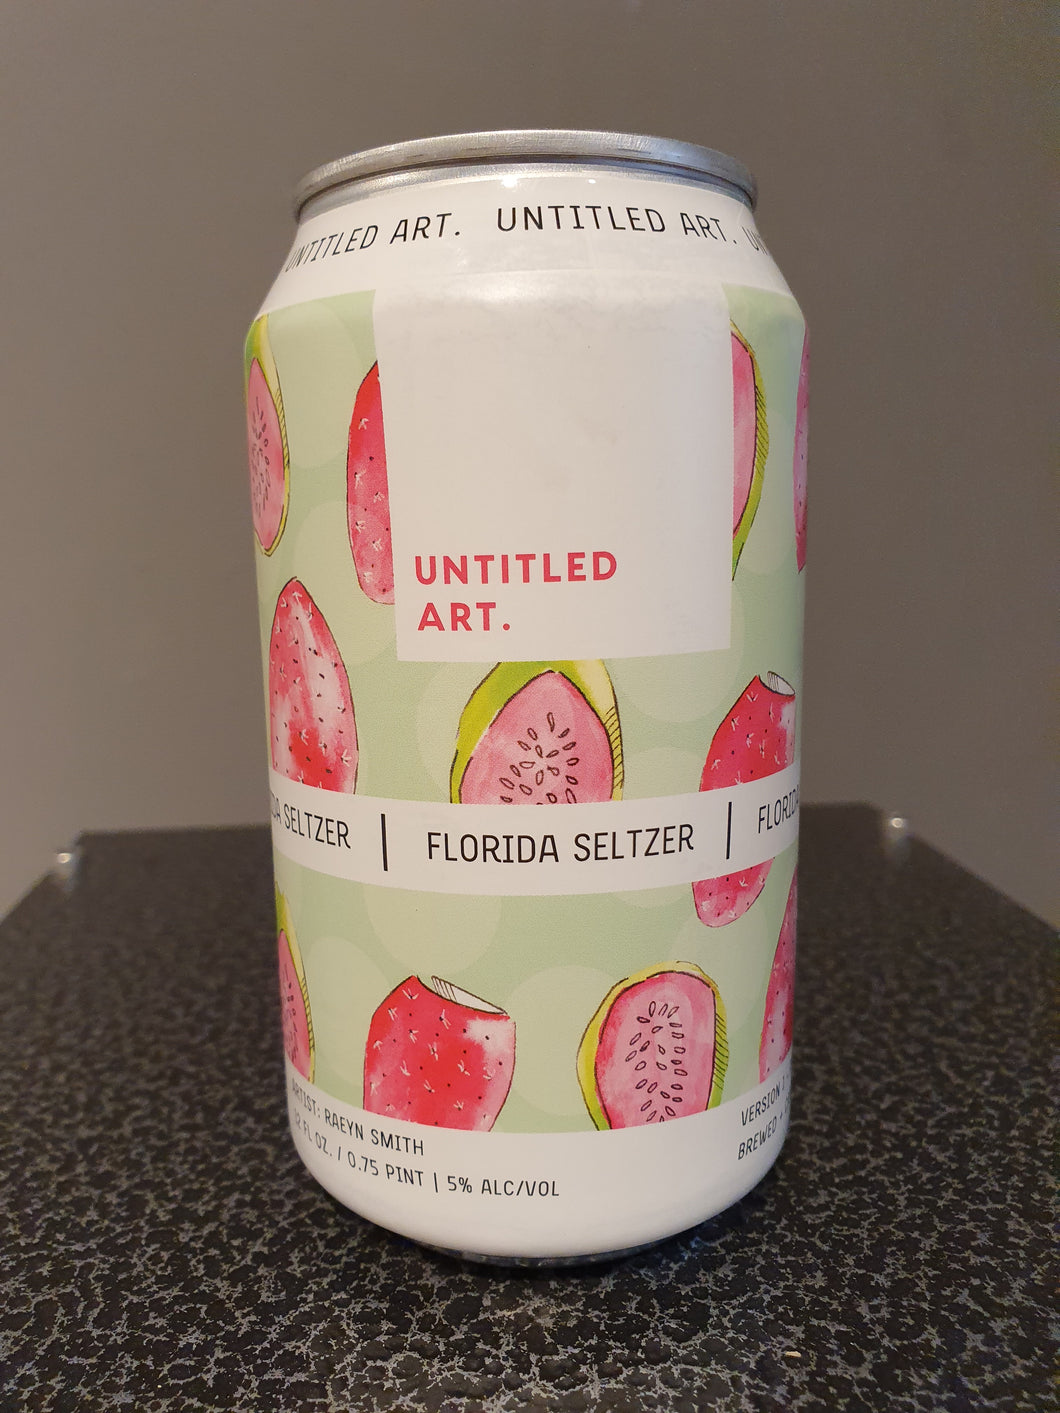 Florida Seltzer (version 1)